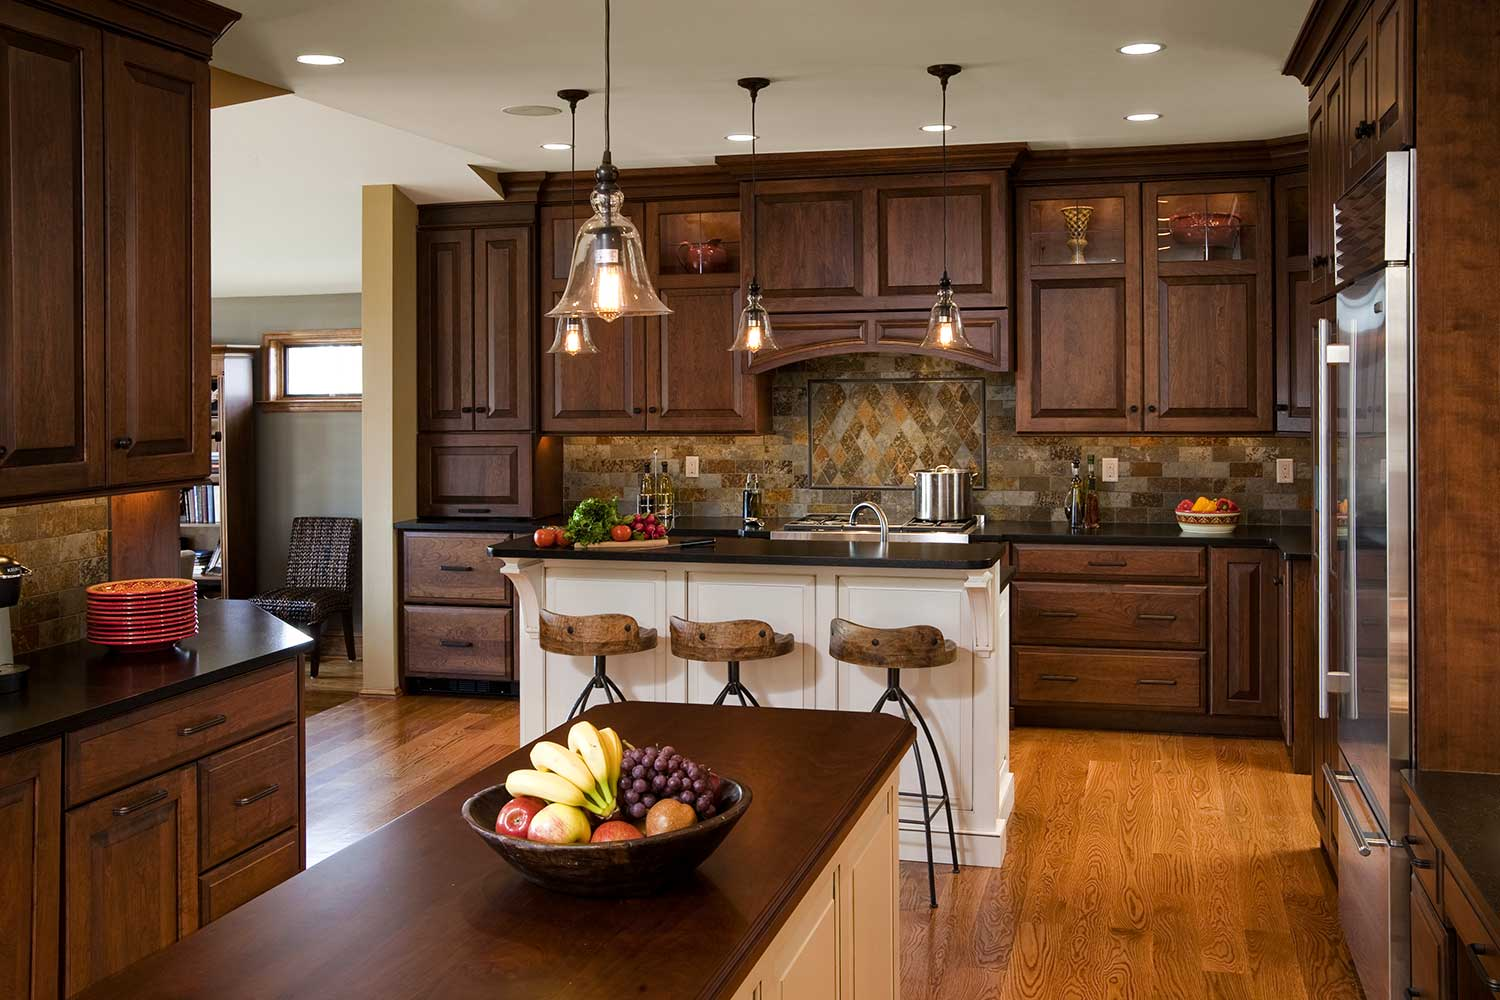 kitchen furniture plans 2018 top kitchen design styles for your home seven dimensions 210